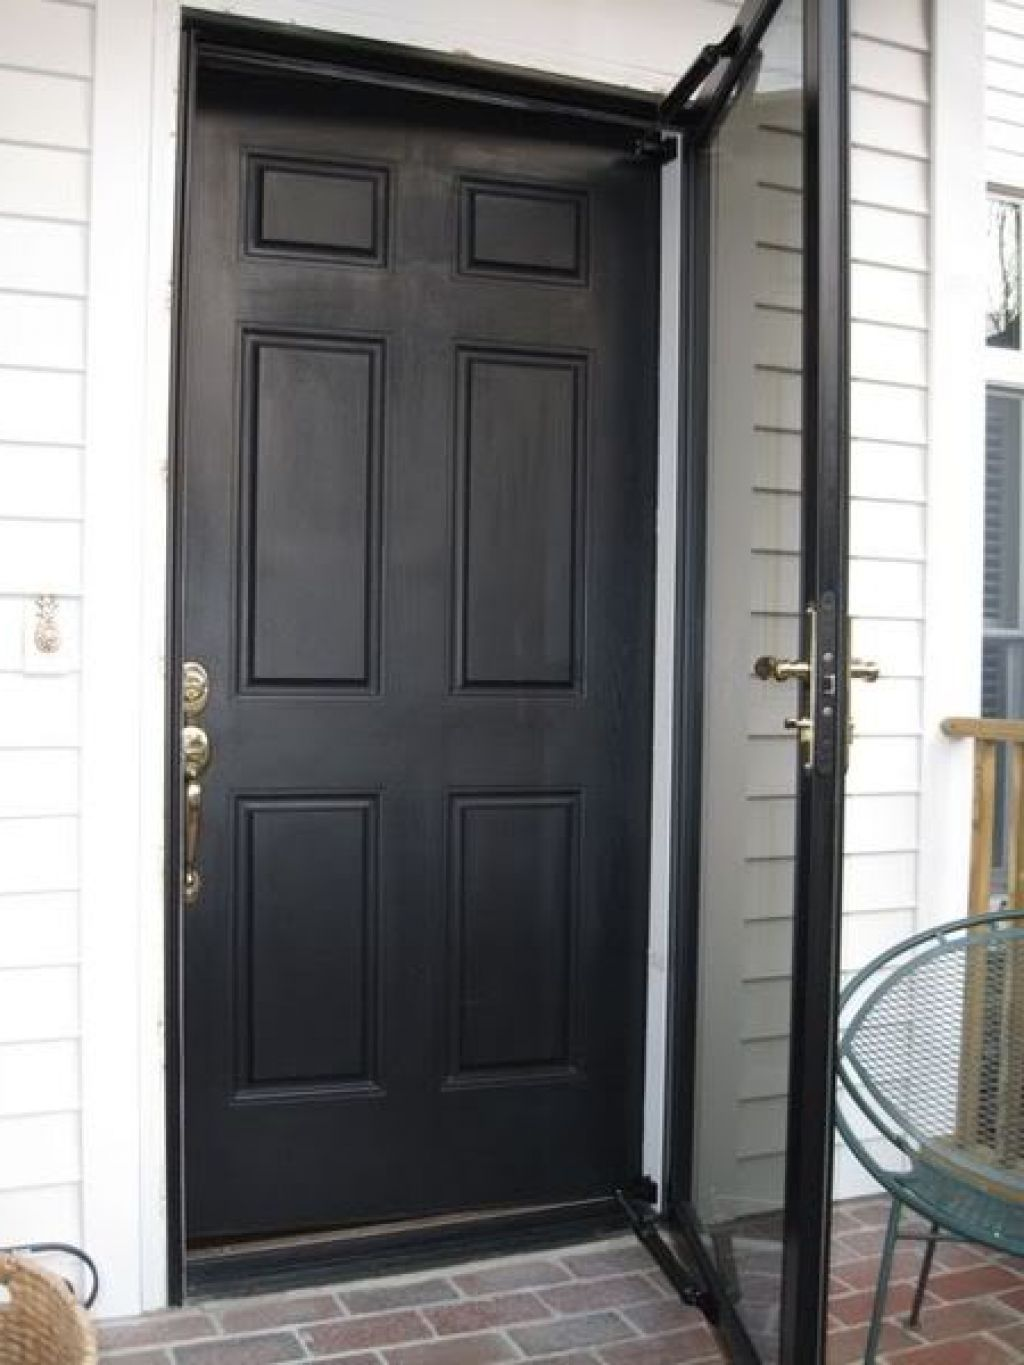 Black Front Door With Black Storm Door And Using Dark Screen For The Cover Also Using Door Spring For Reinforcement With Images Black Front Doors Black Exterior Doors Storm Door